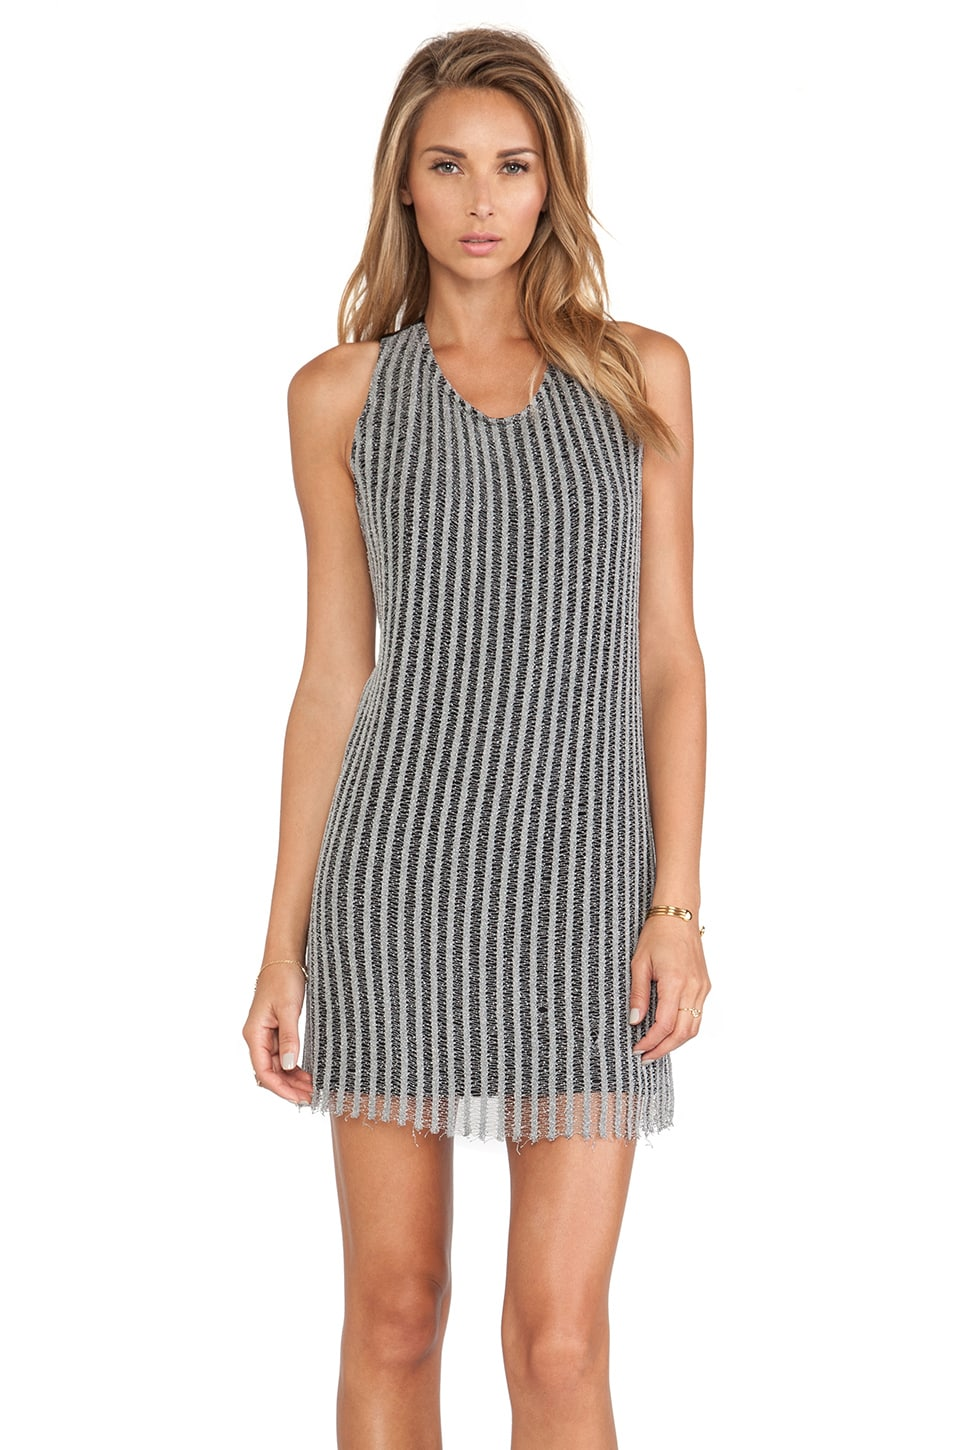 Erin Kleinberg Fiona Mini Dress in Grey & Black Leather